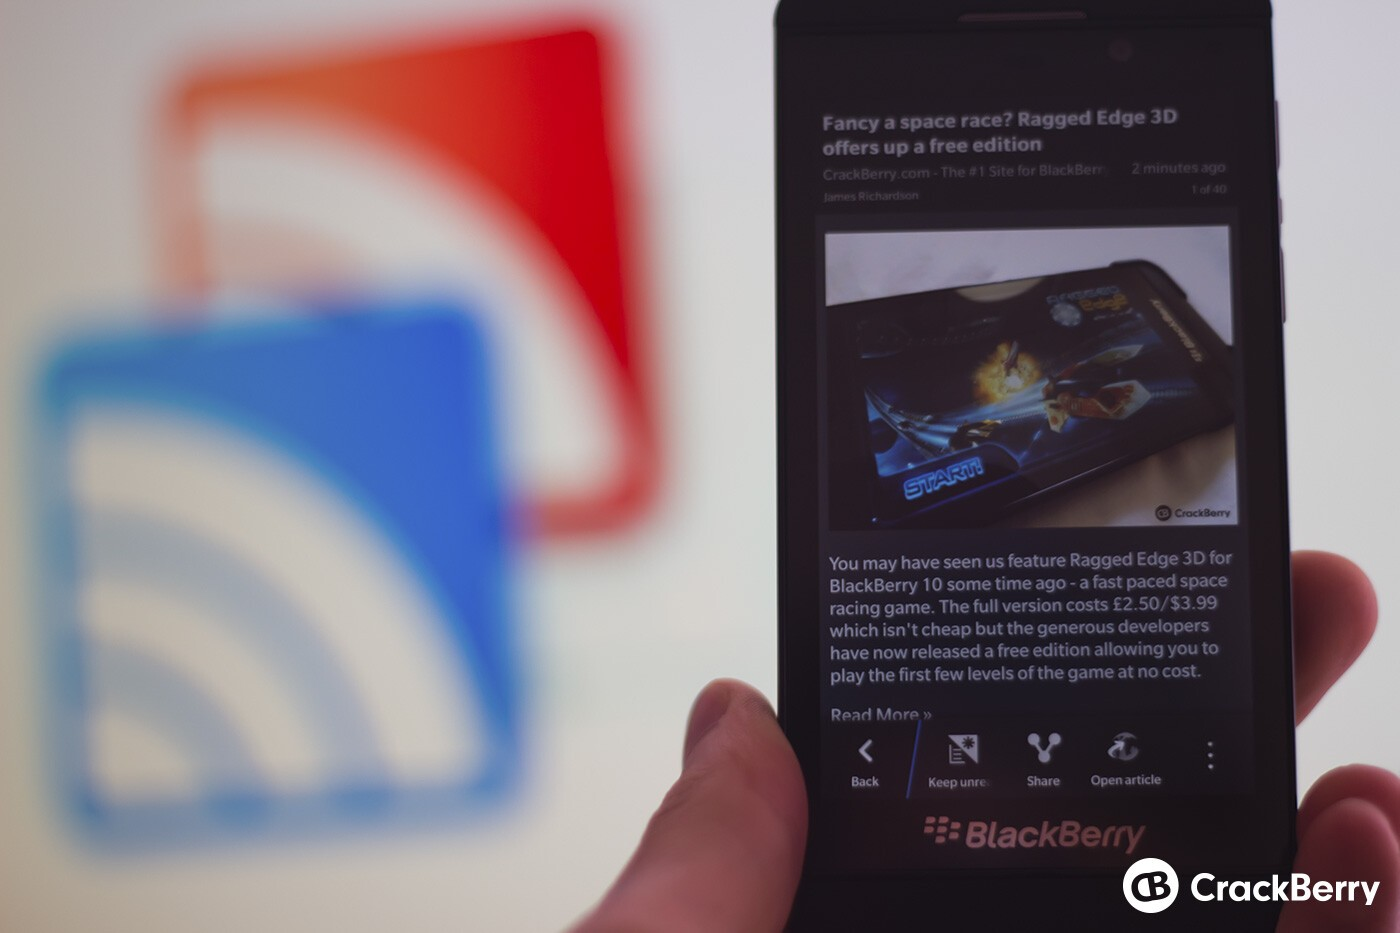 BlackBerry 10 Google Reader